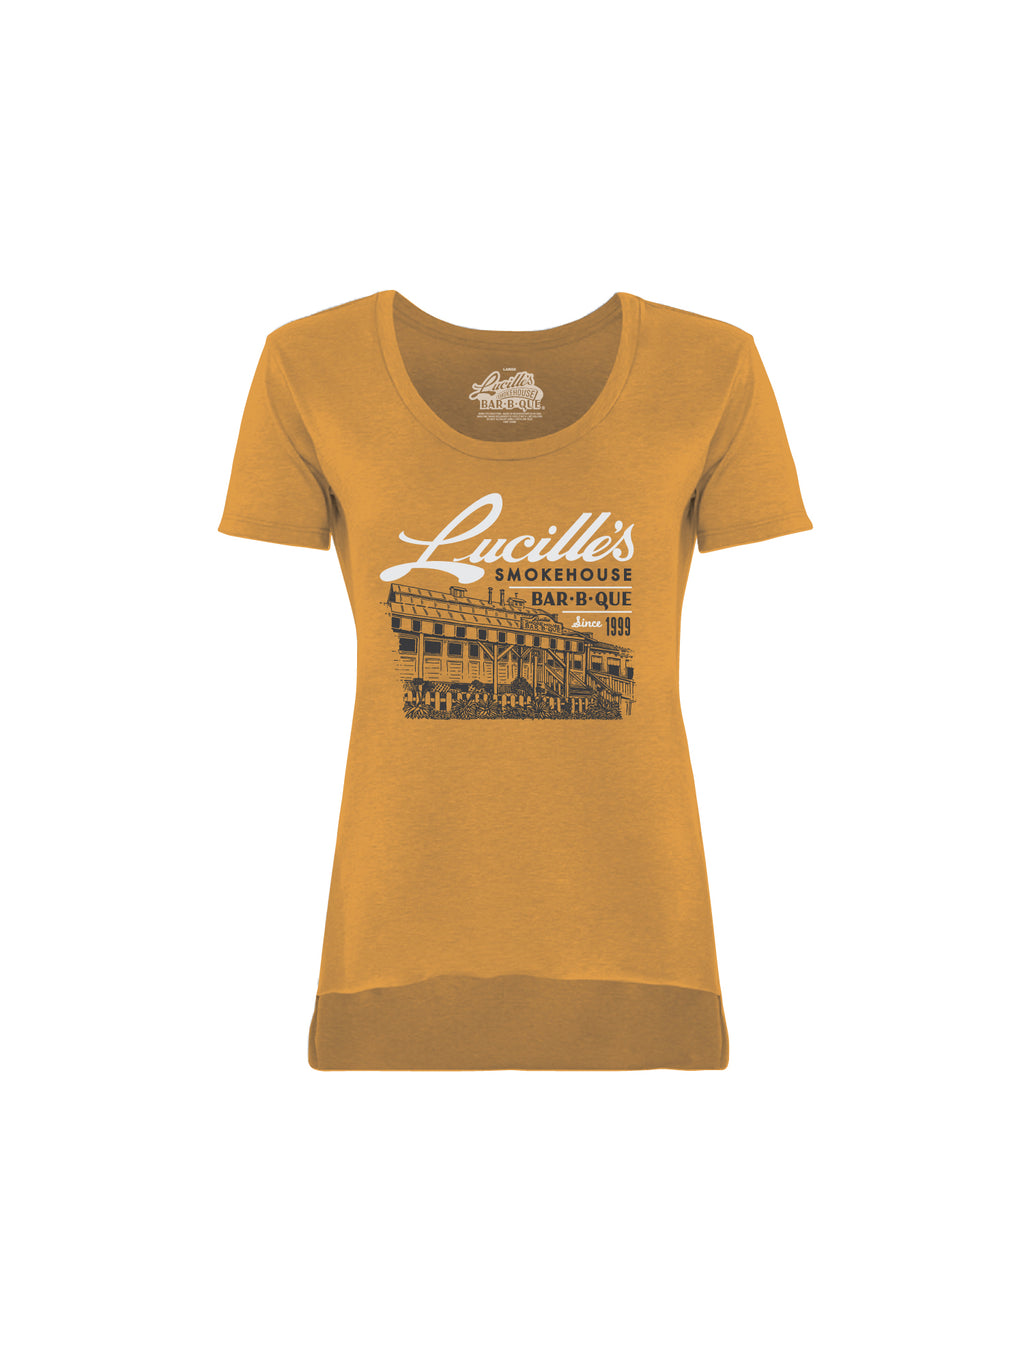 ILLUSTRATION WOMEN TEE (GOLD) - Anderson Bros Design and Supply